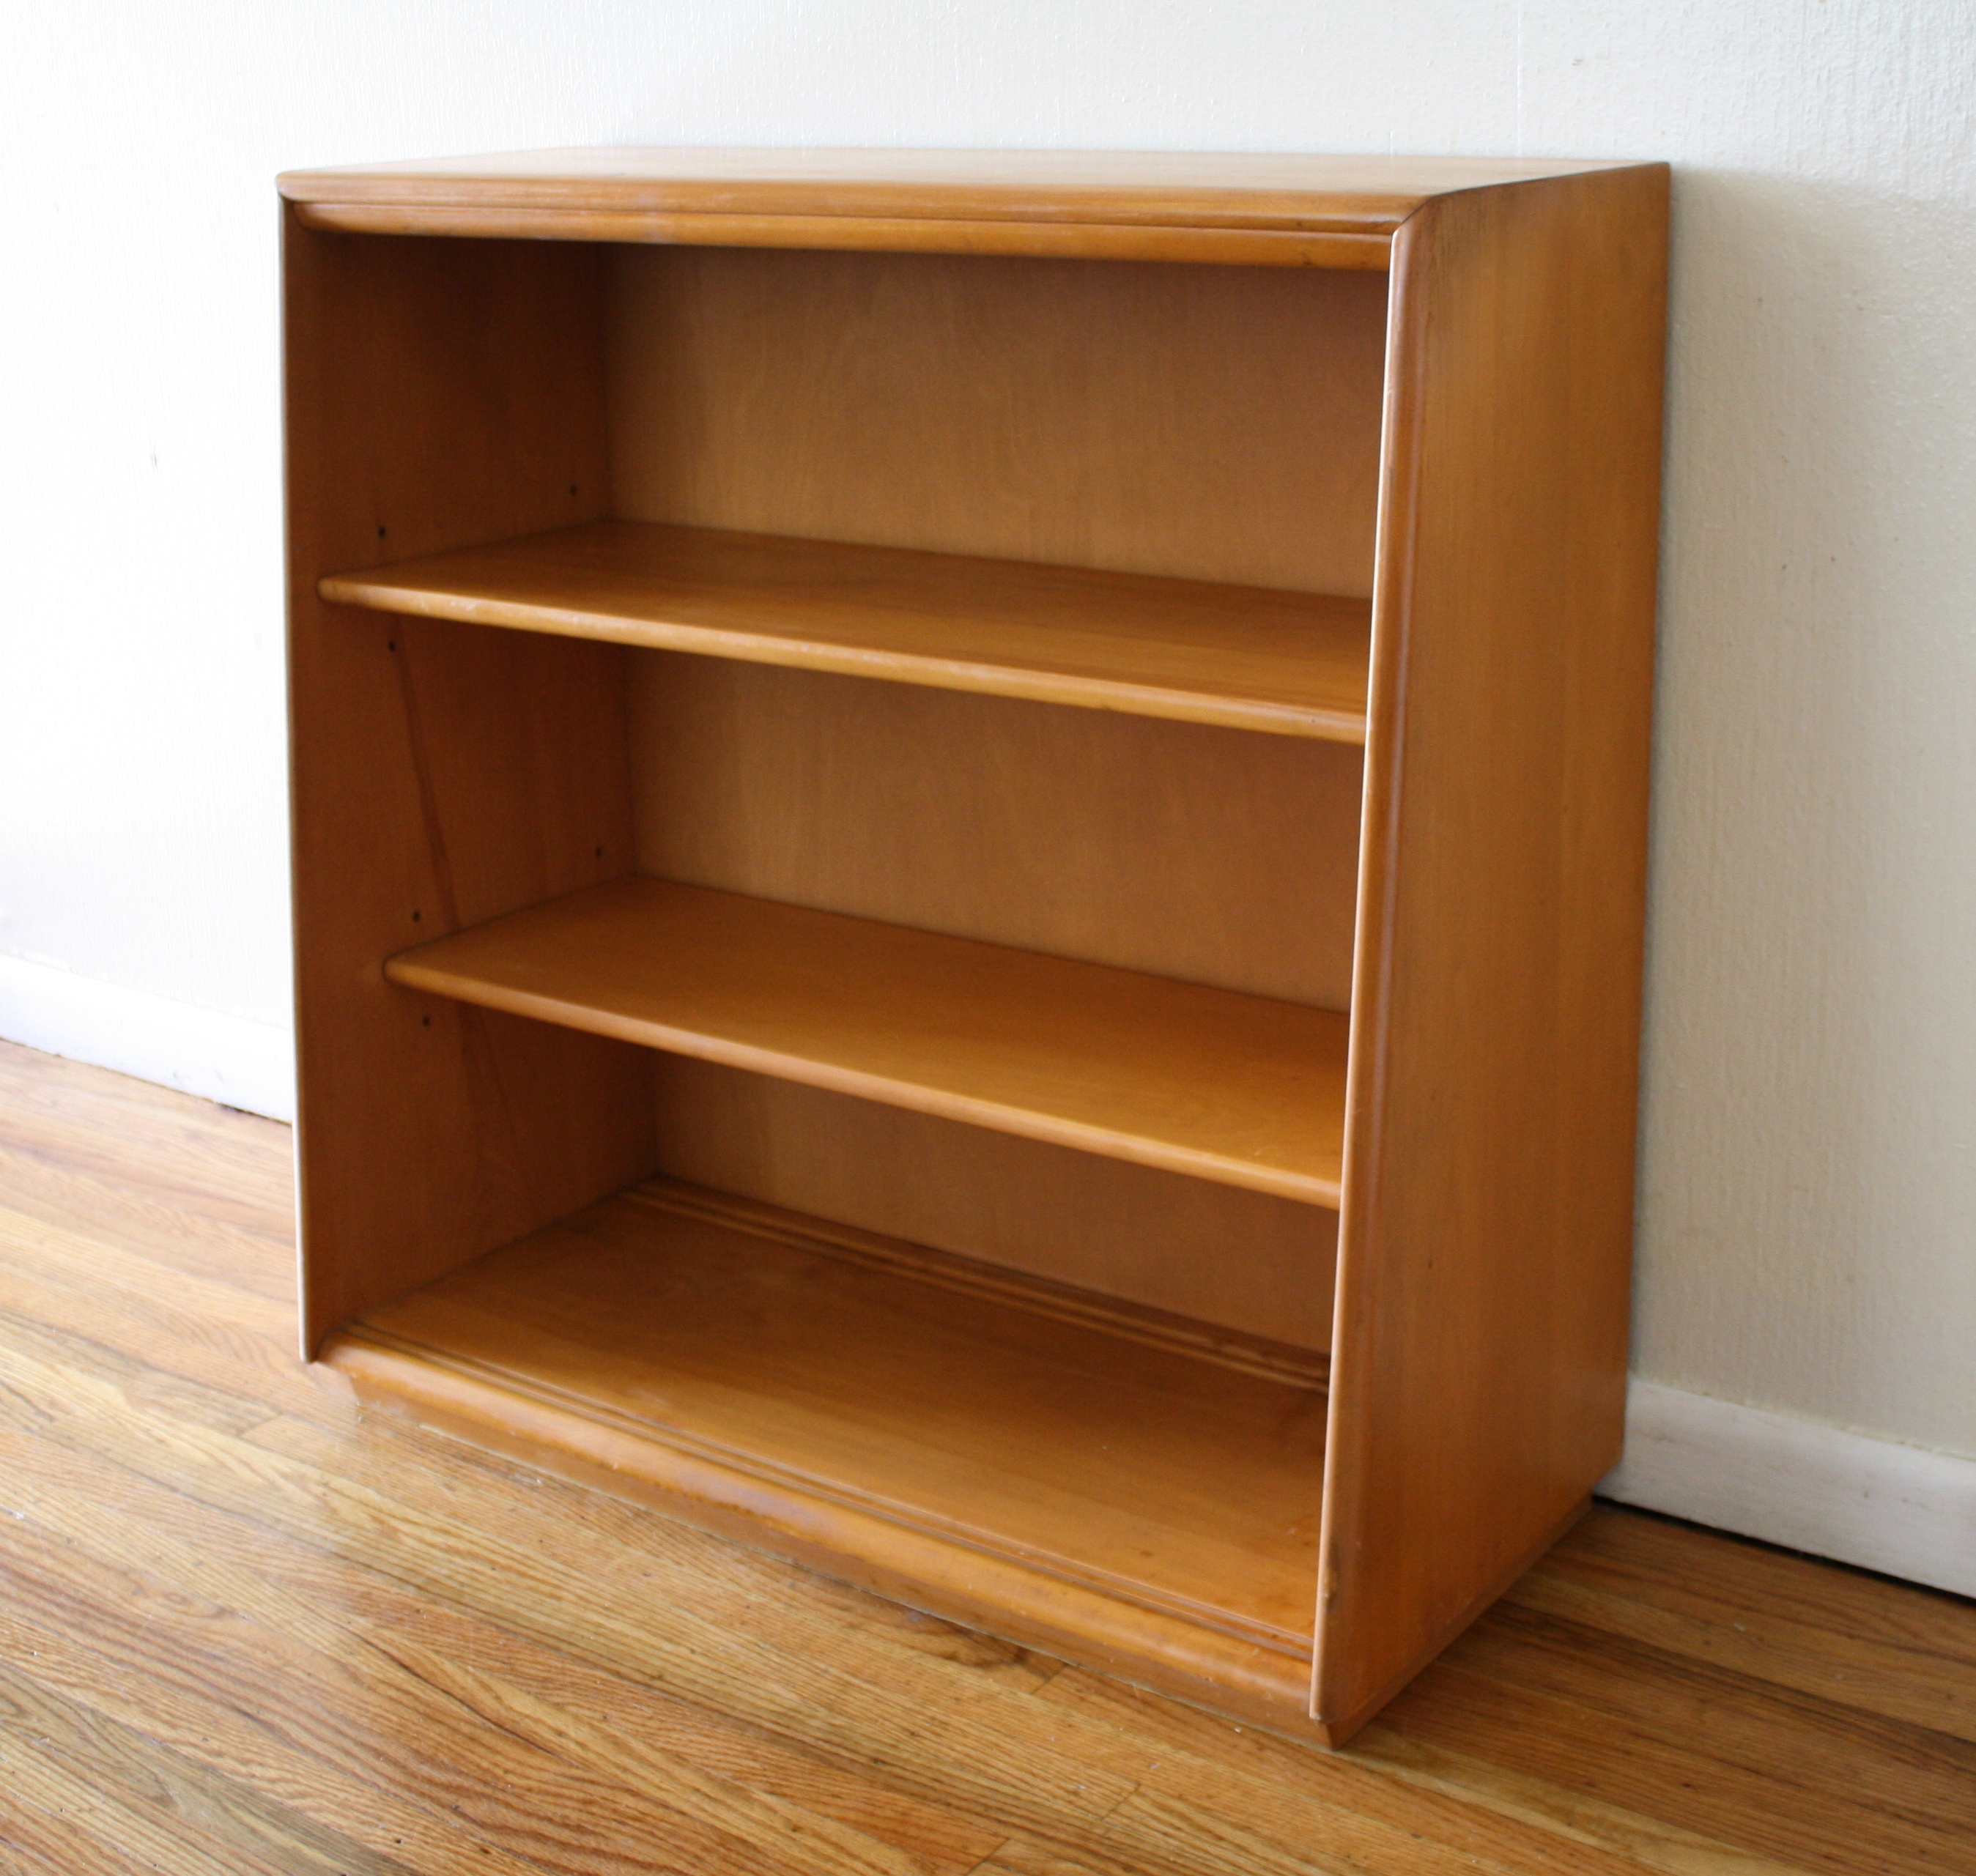 Design Wondrous Solid Oak Shelving Uk Shelf Design Fascinating Throughout Solid Oak Bookcase (View 14 of 15)